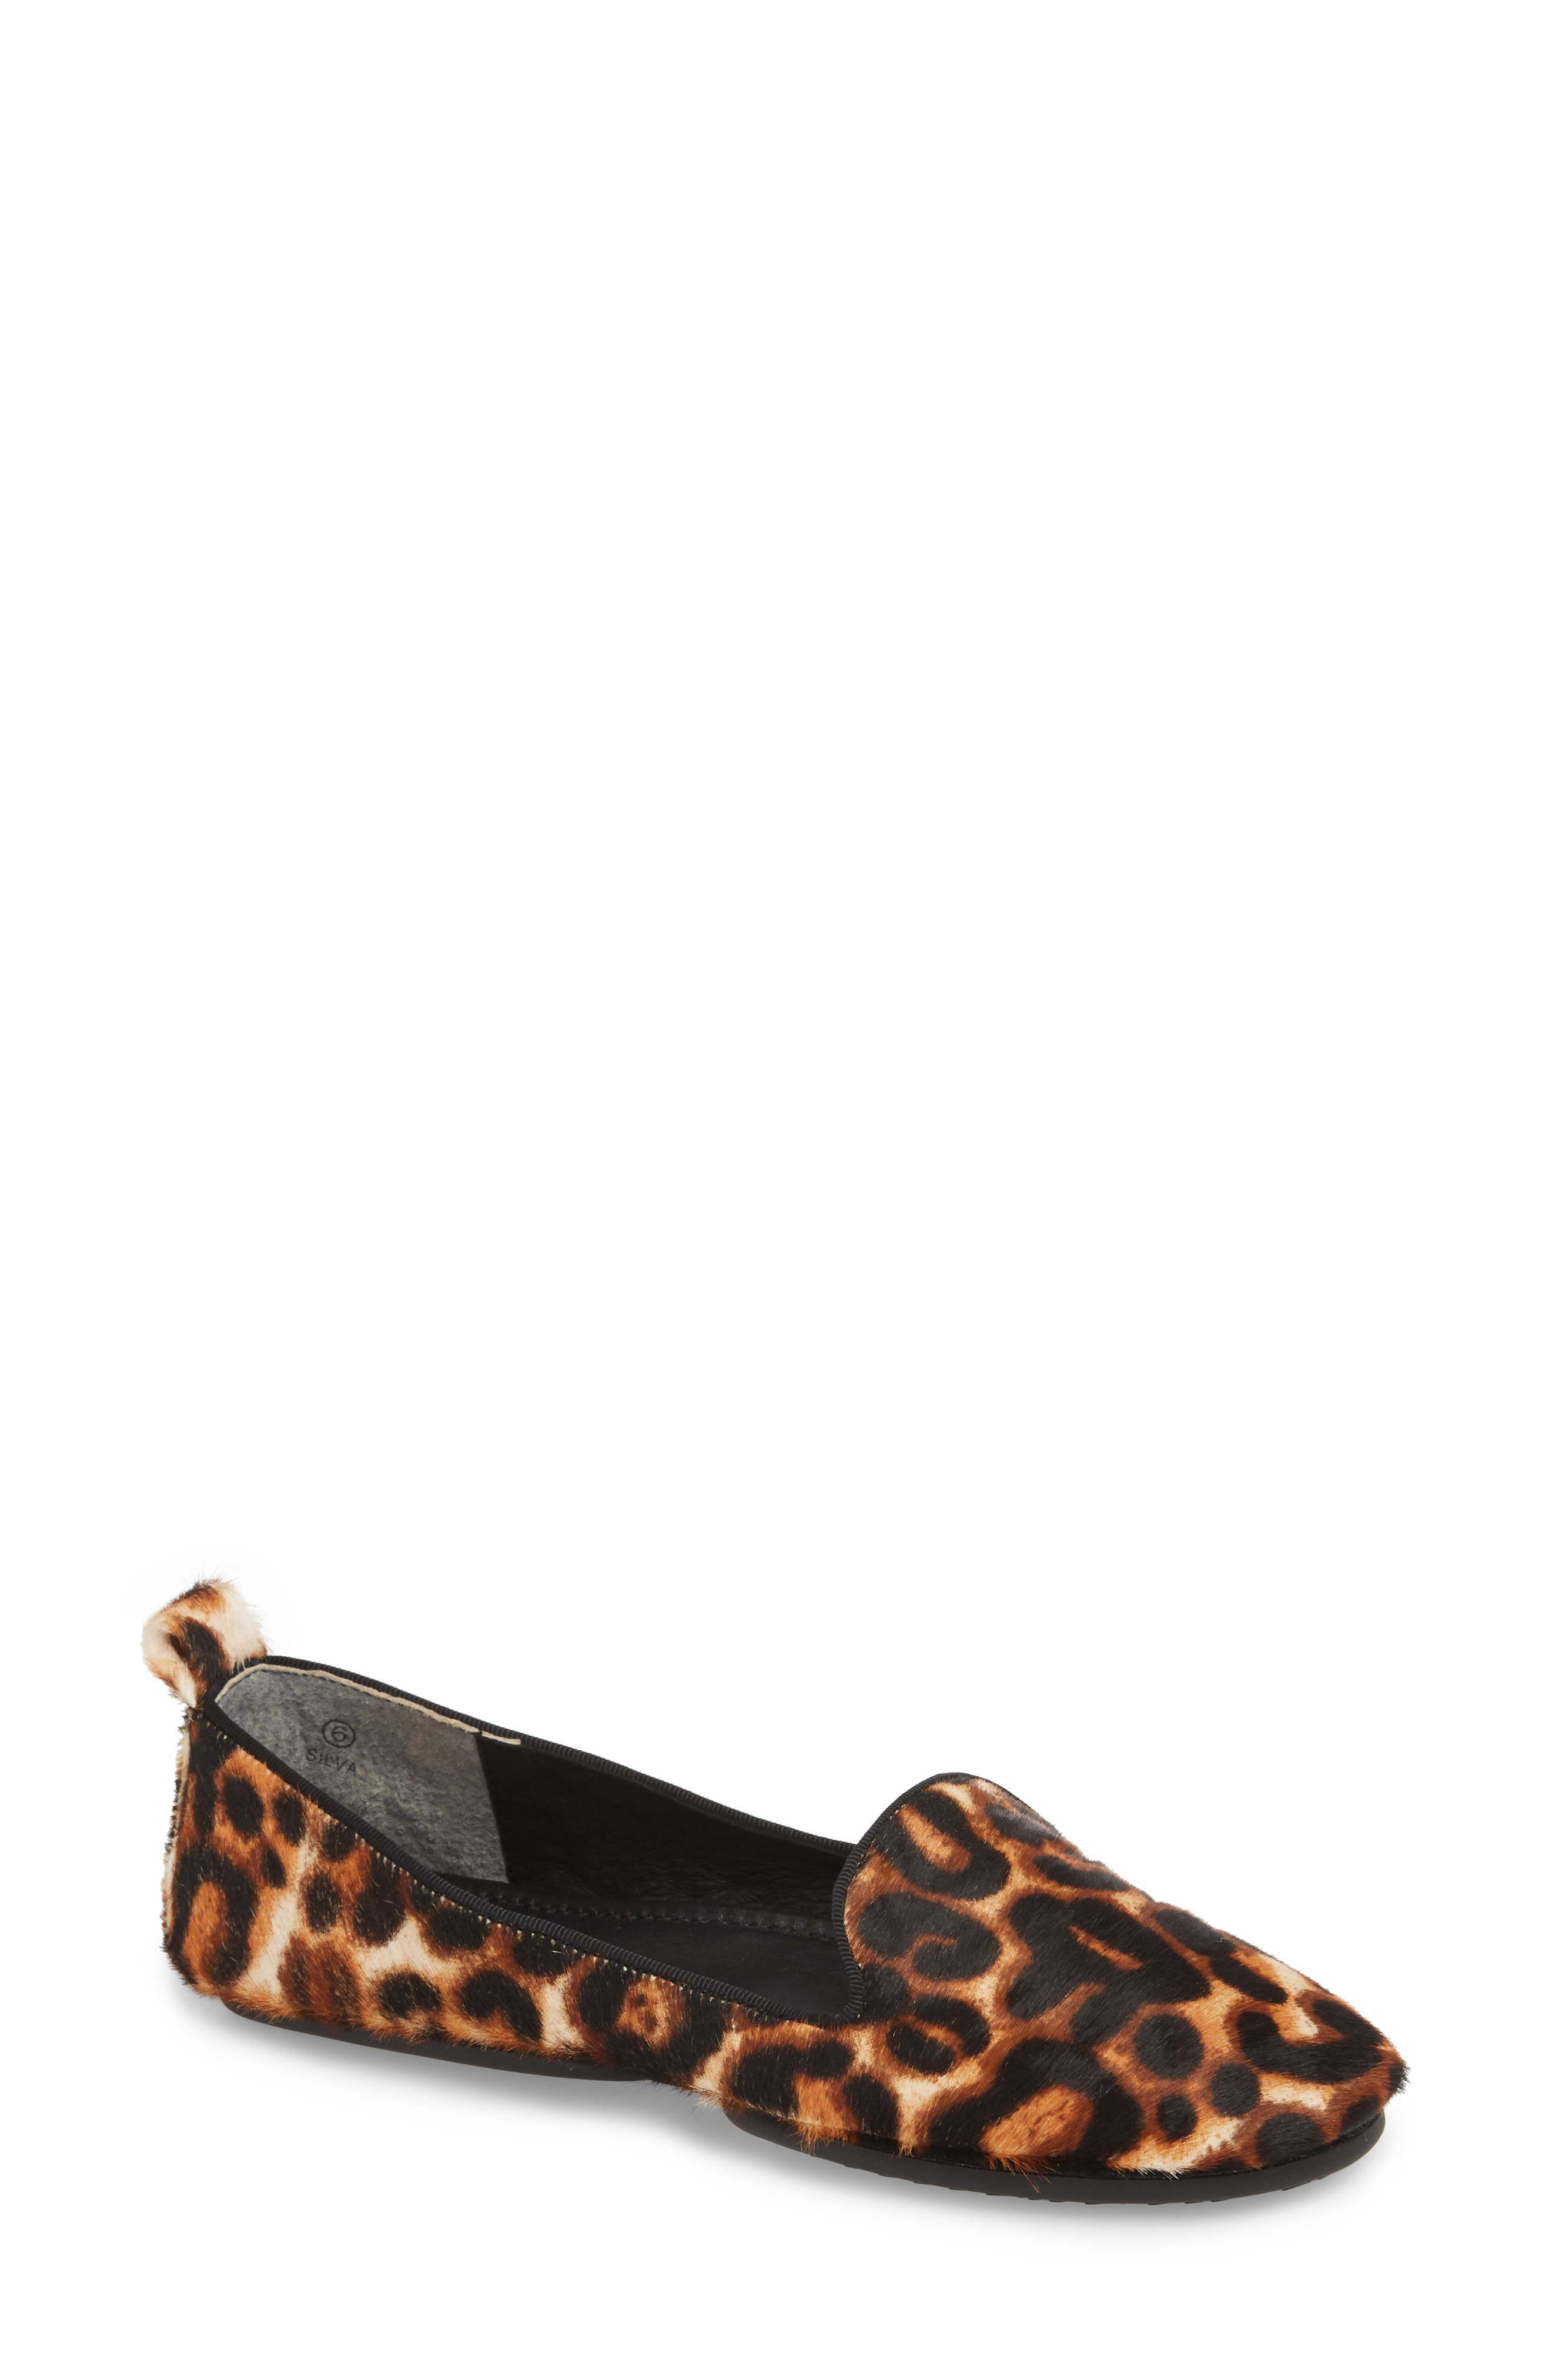 Silva Genuine Calf Hair Loafer,                             Main thumbnail 1, color,                             Natural Leopard Calf Hair